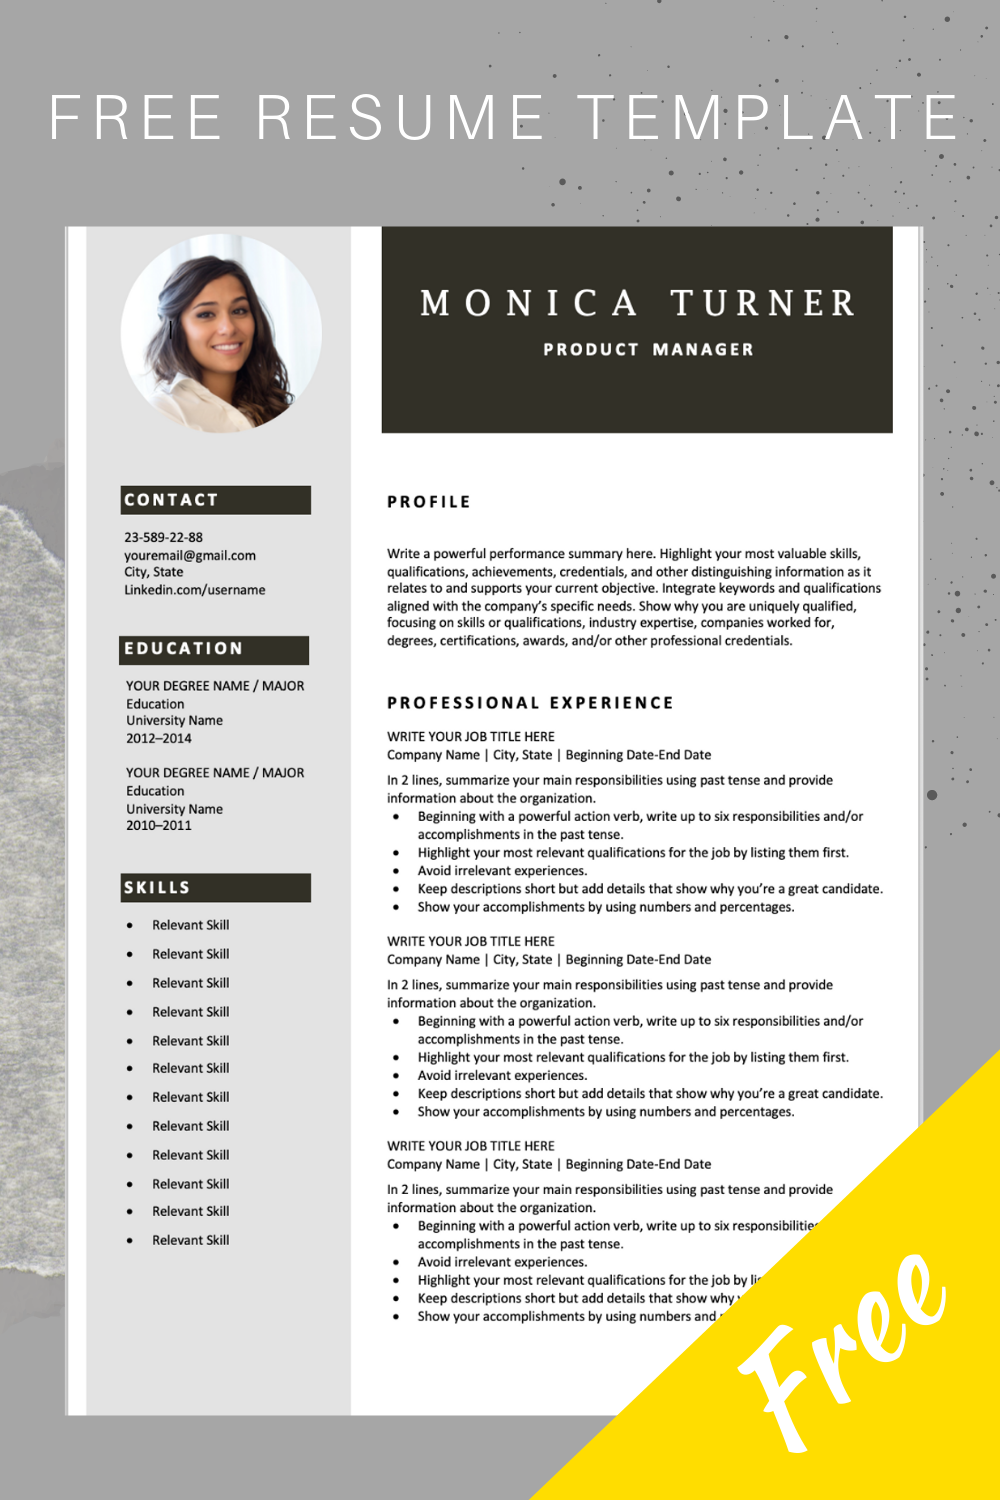 Modern Resume Template Download For Free Downloadable Resume Template Free Resume Template Word Job Resume Template